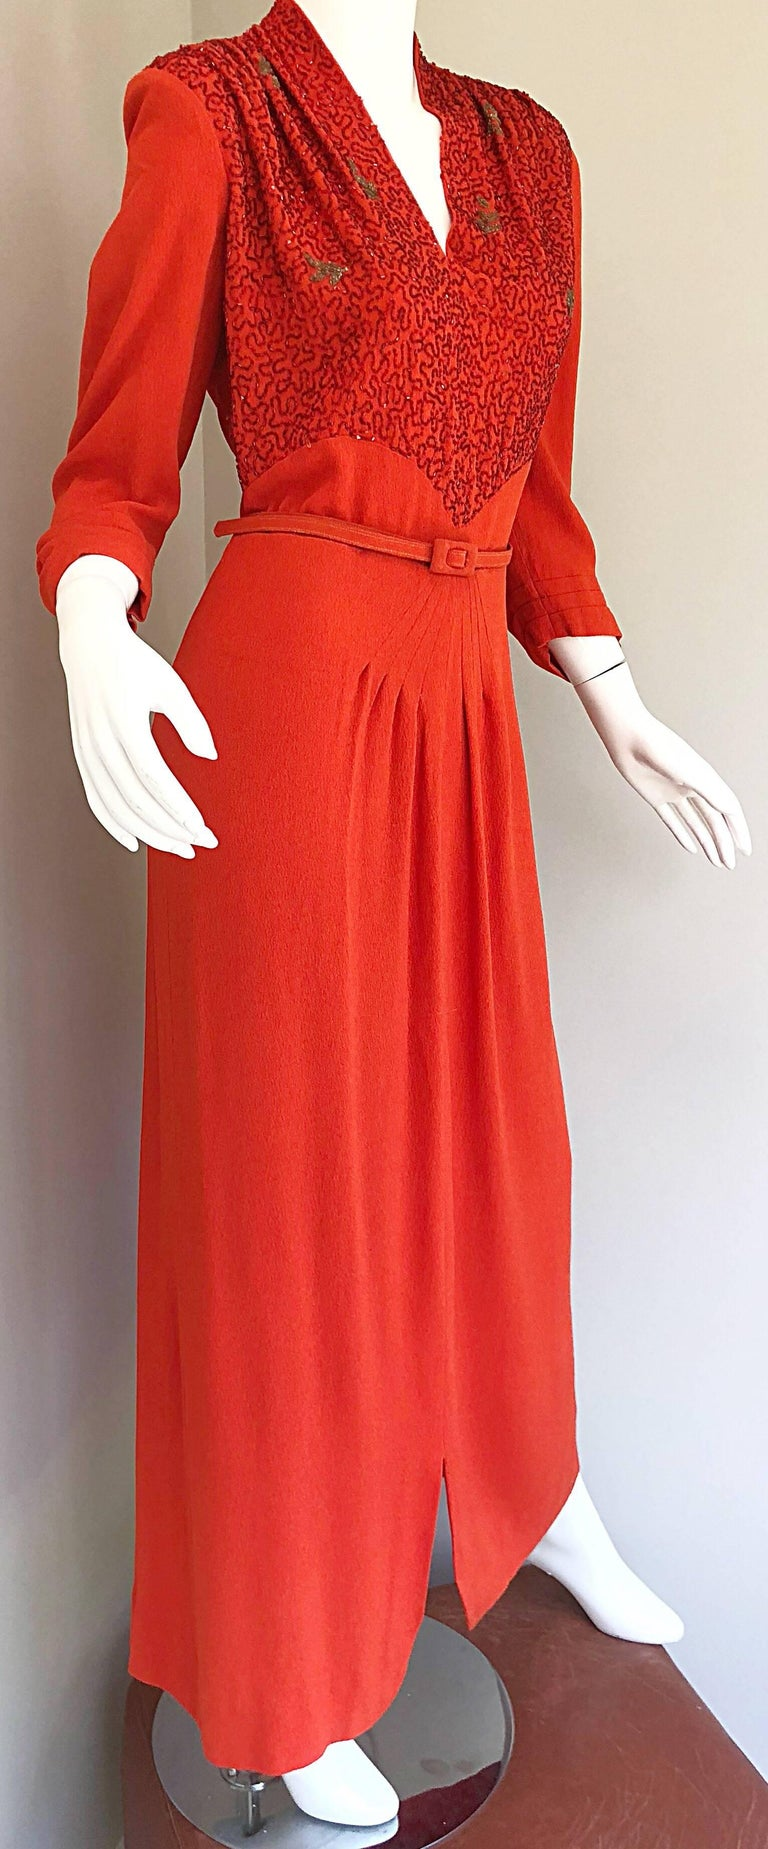 b9d84be7b655 1940s Kornhauser Original Burnt Orange Beaded Vintage 40s Couture Crepe Gown  For Sale 2